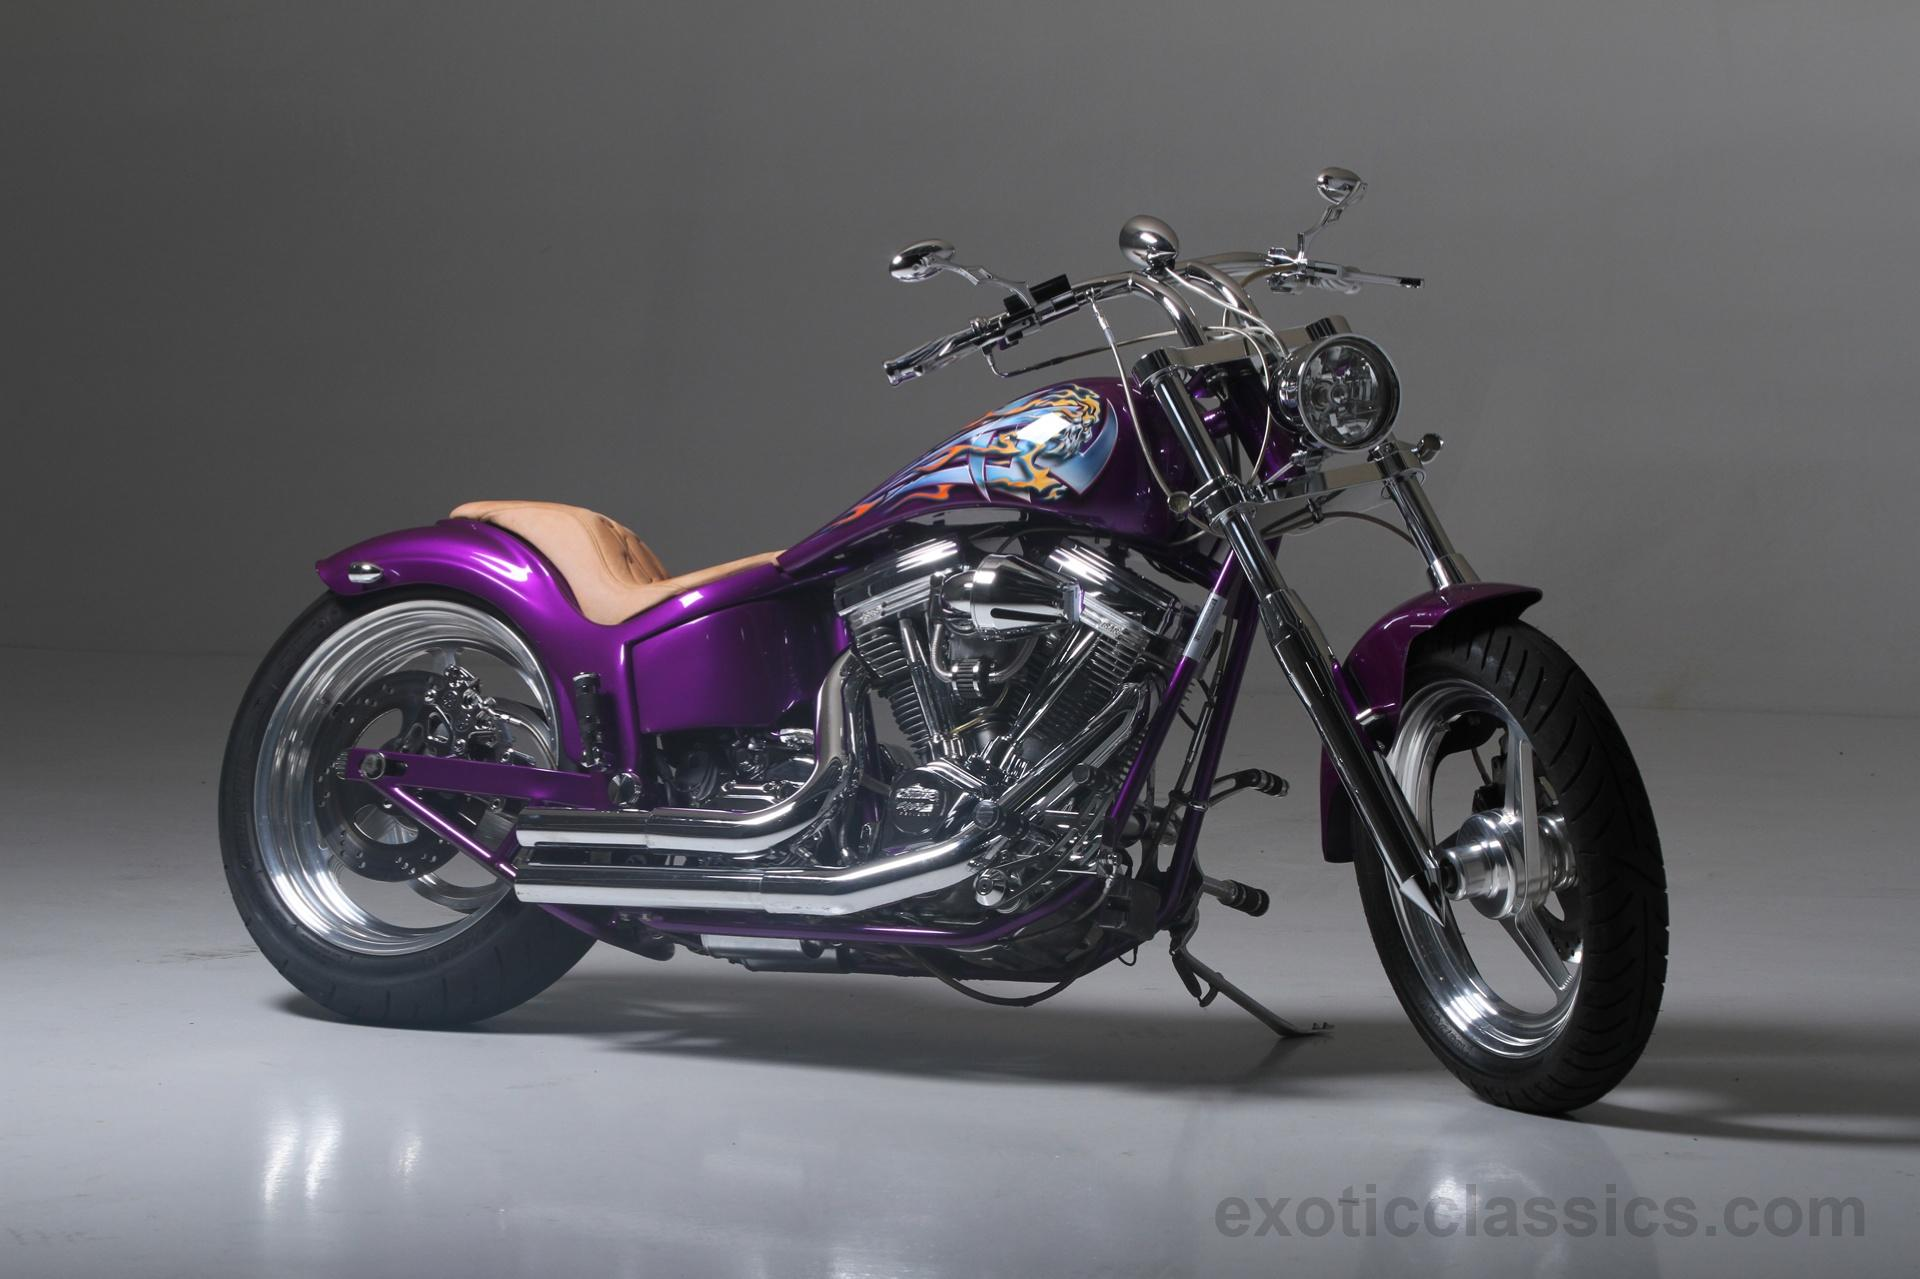 Free Carfax Check >> 1993 Motorcycle Custom Chopper Eddie Trotta - Champion